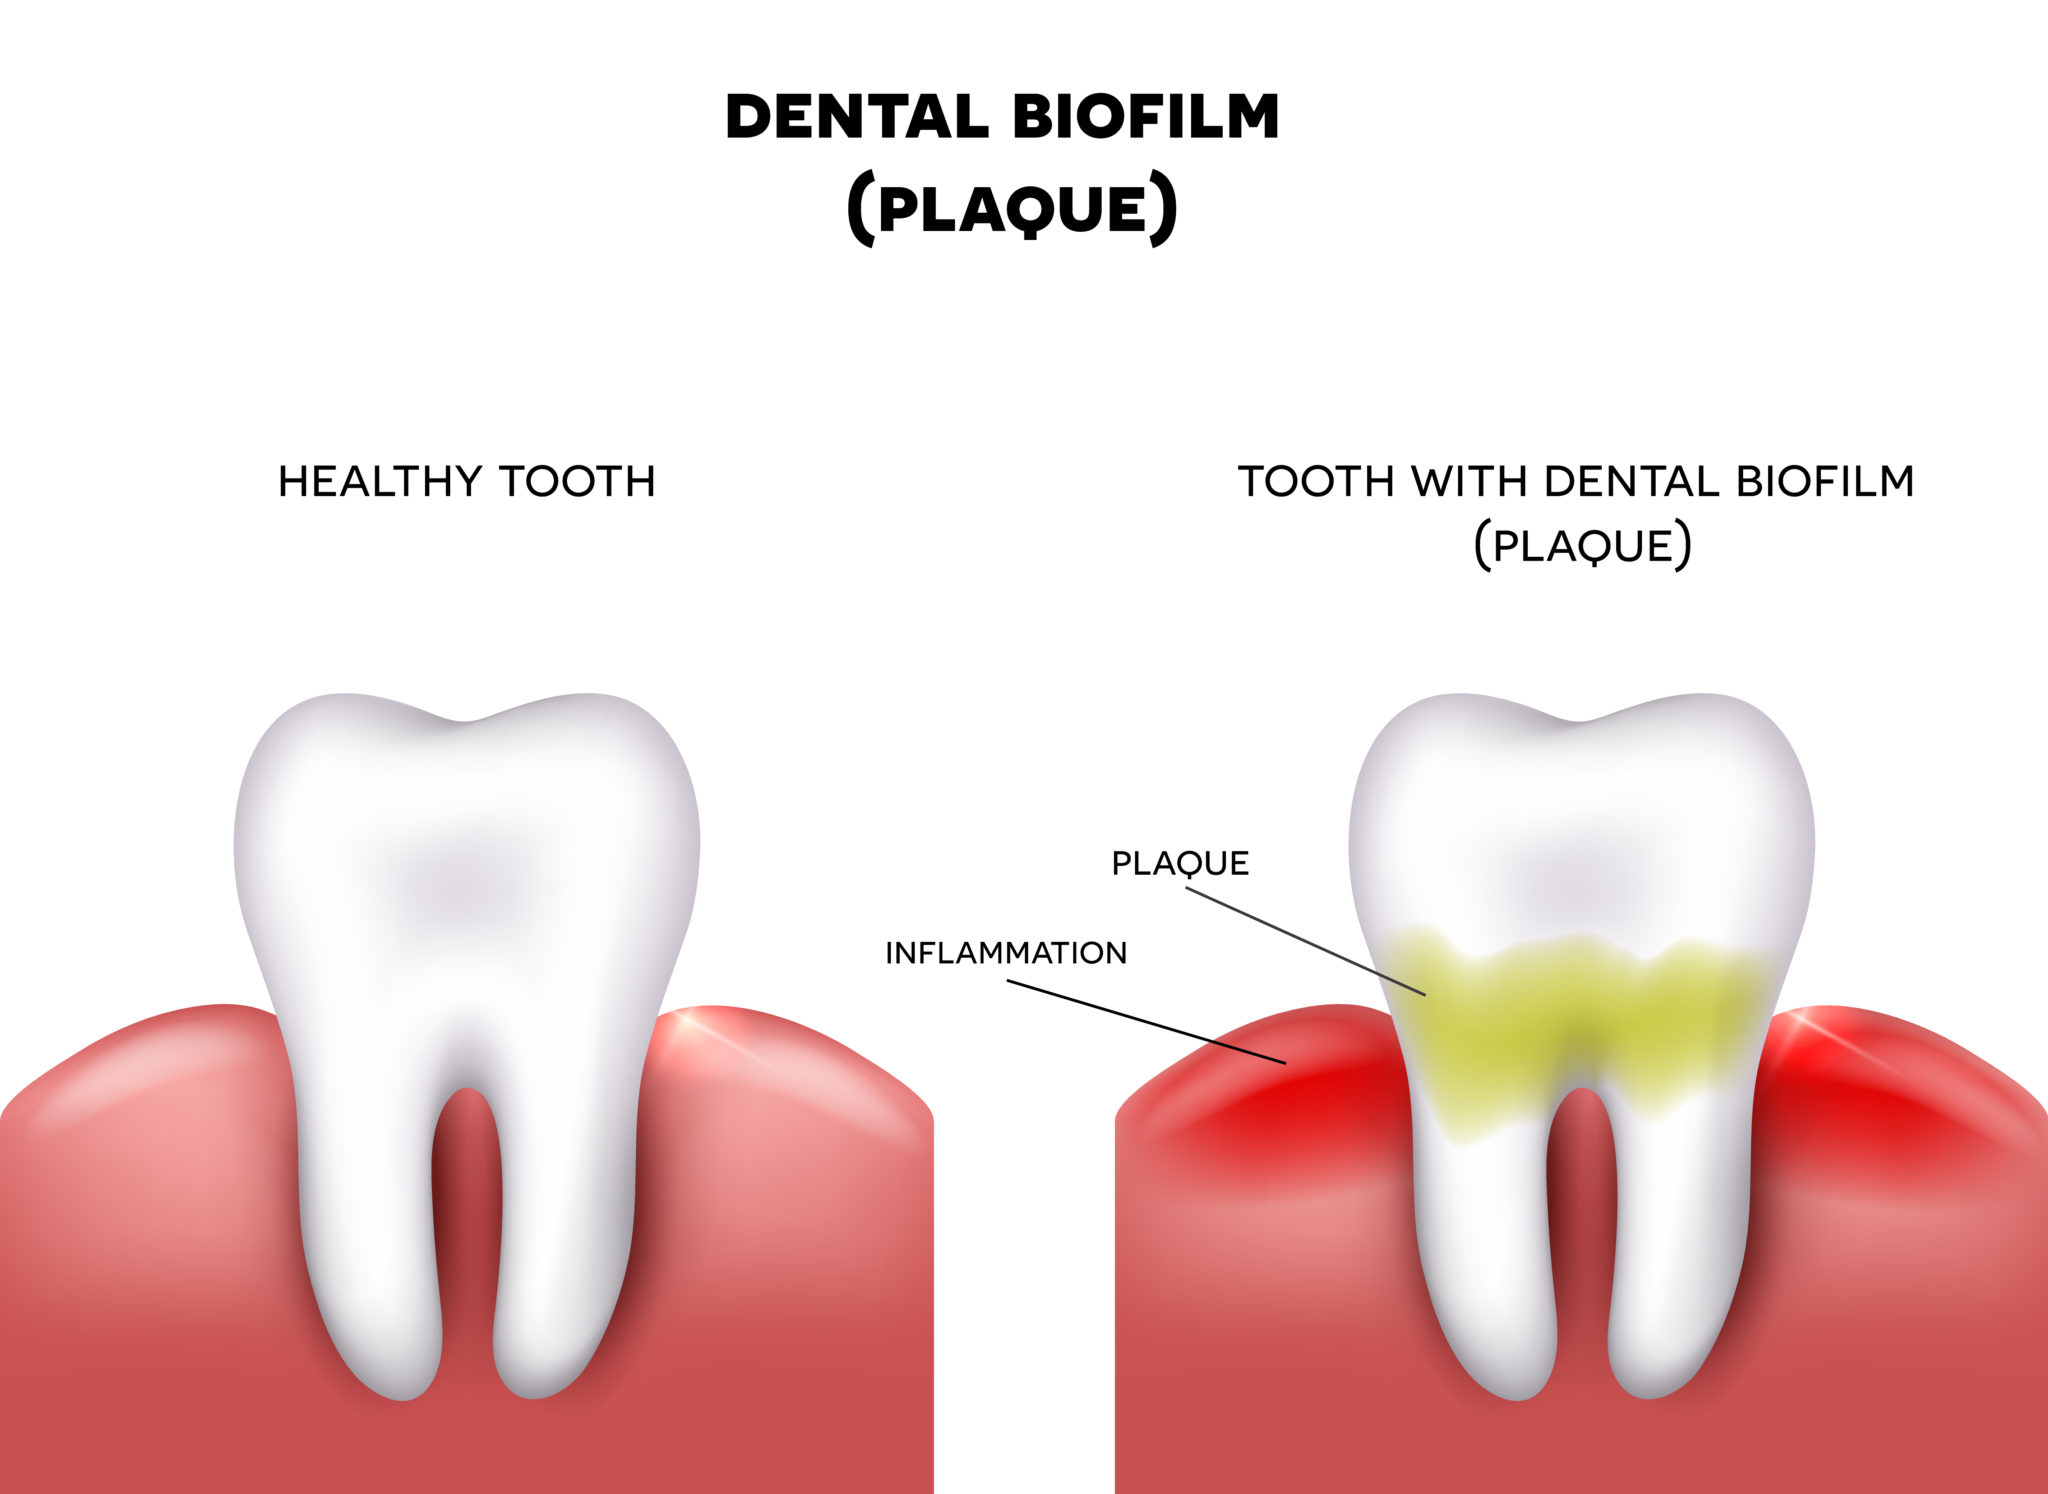 Why dental plaque and tartar need to be removed from teeth - Plaque de finition ...